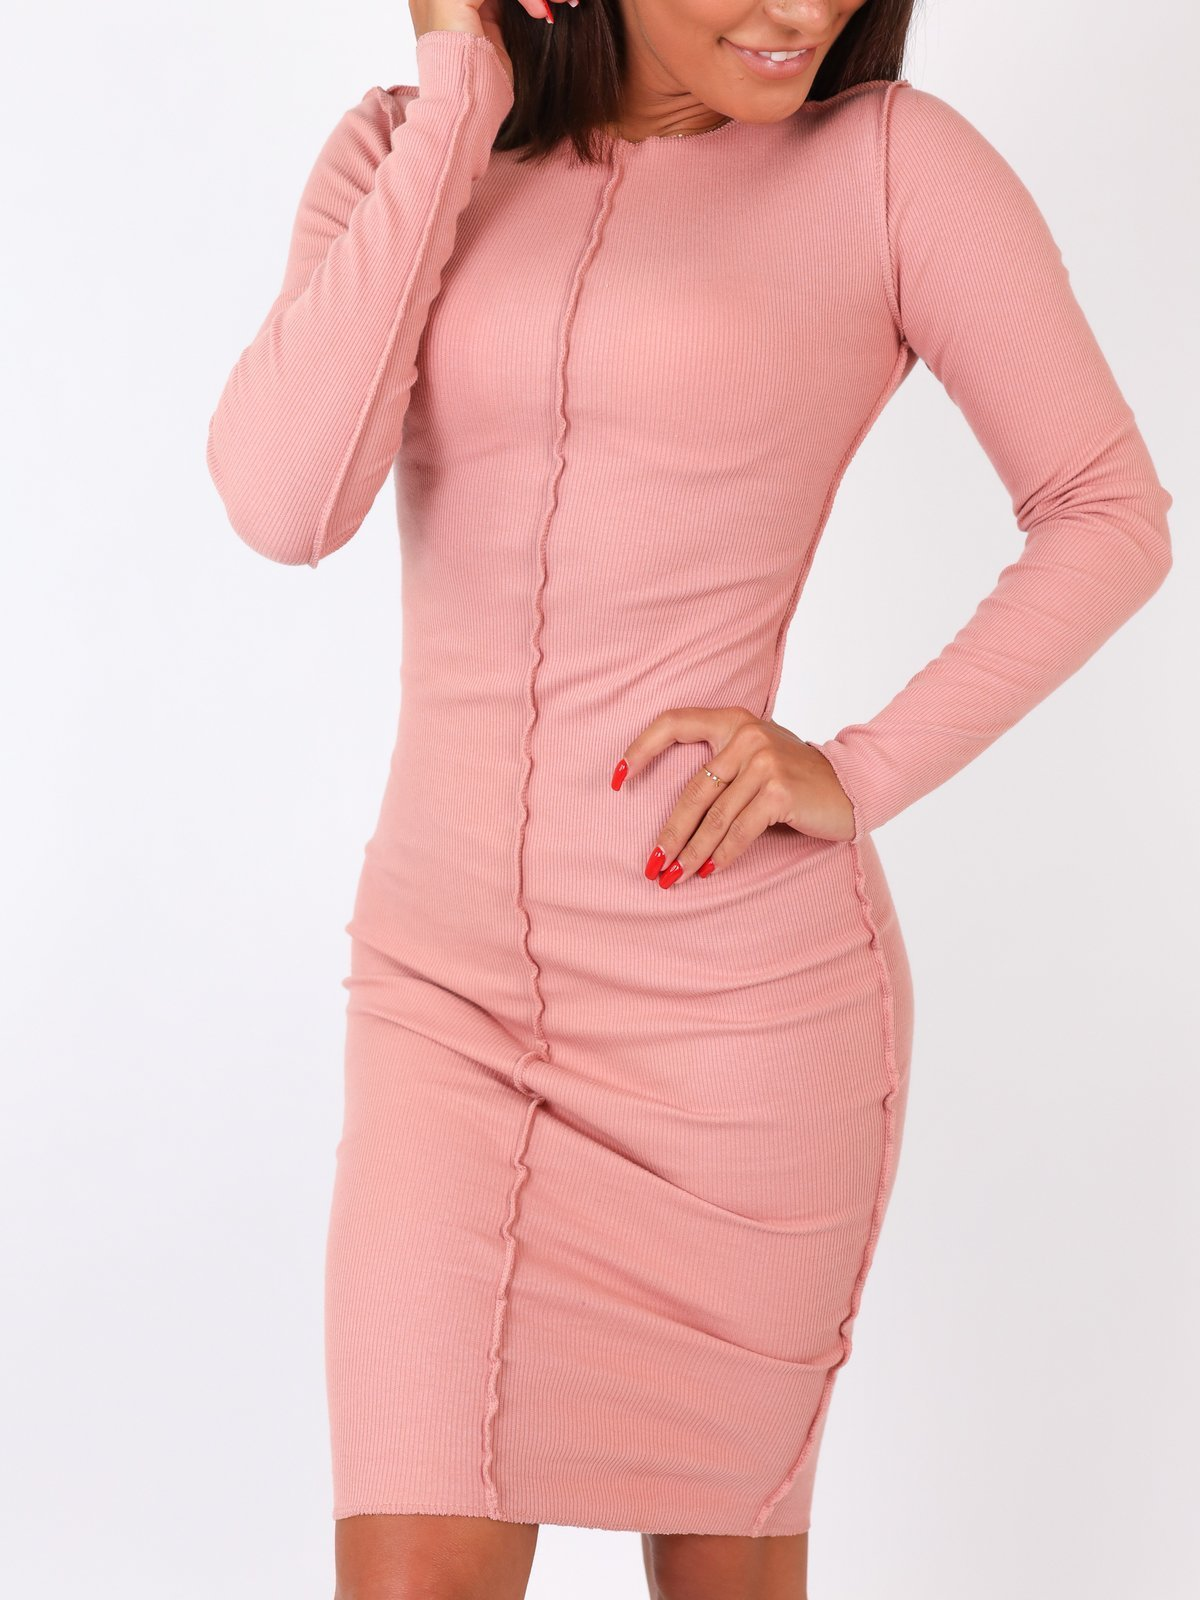 Rib Stitch Bodycon Midi Dress - PINK -B24